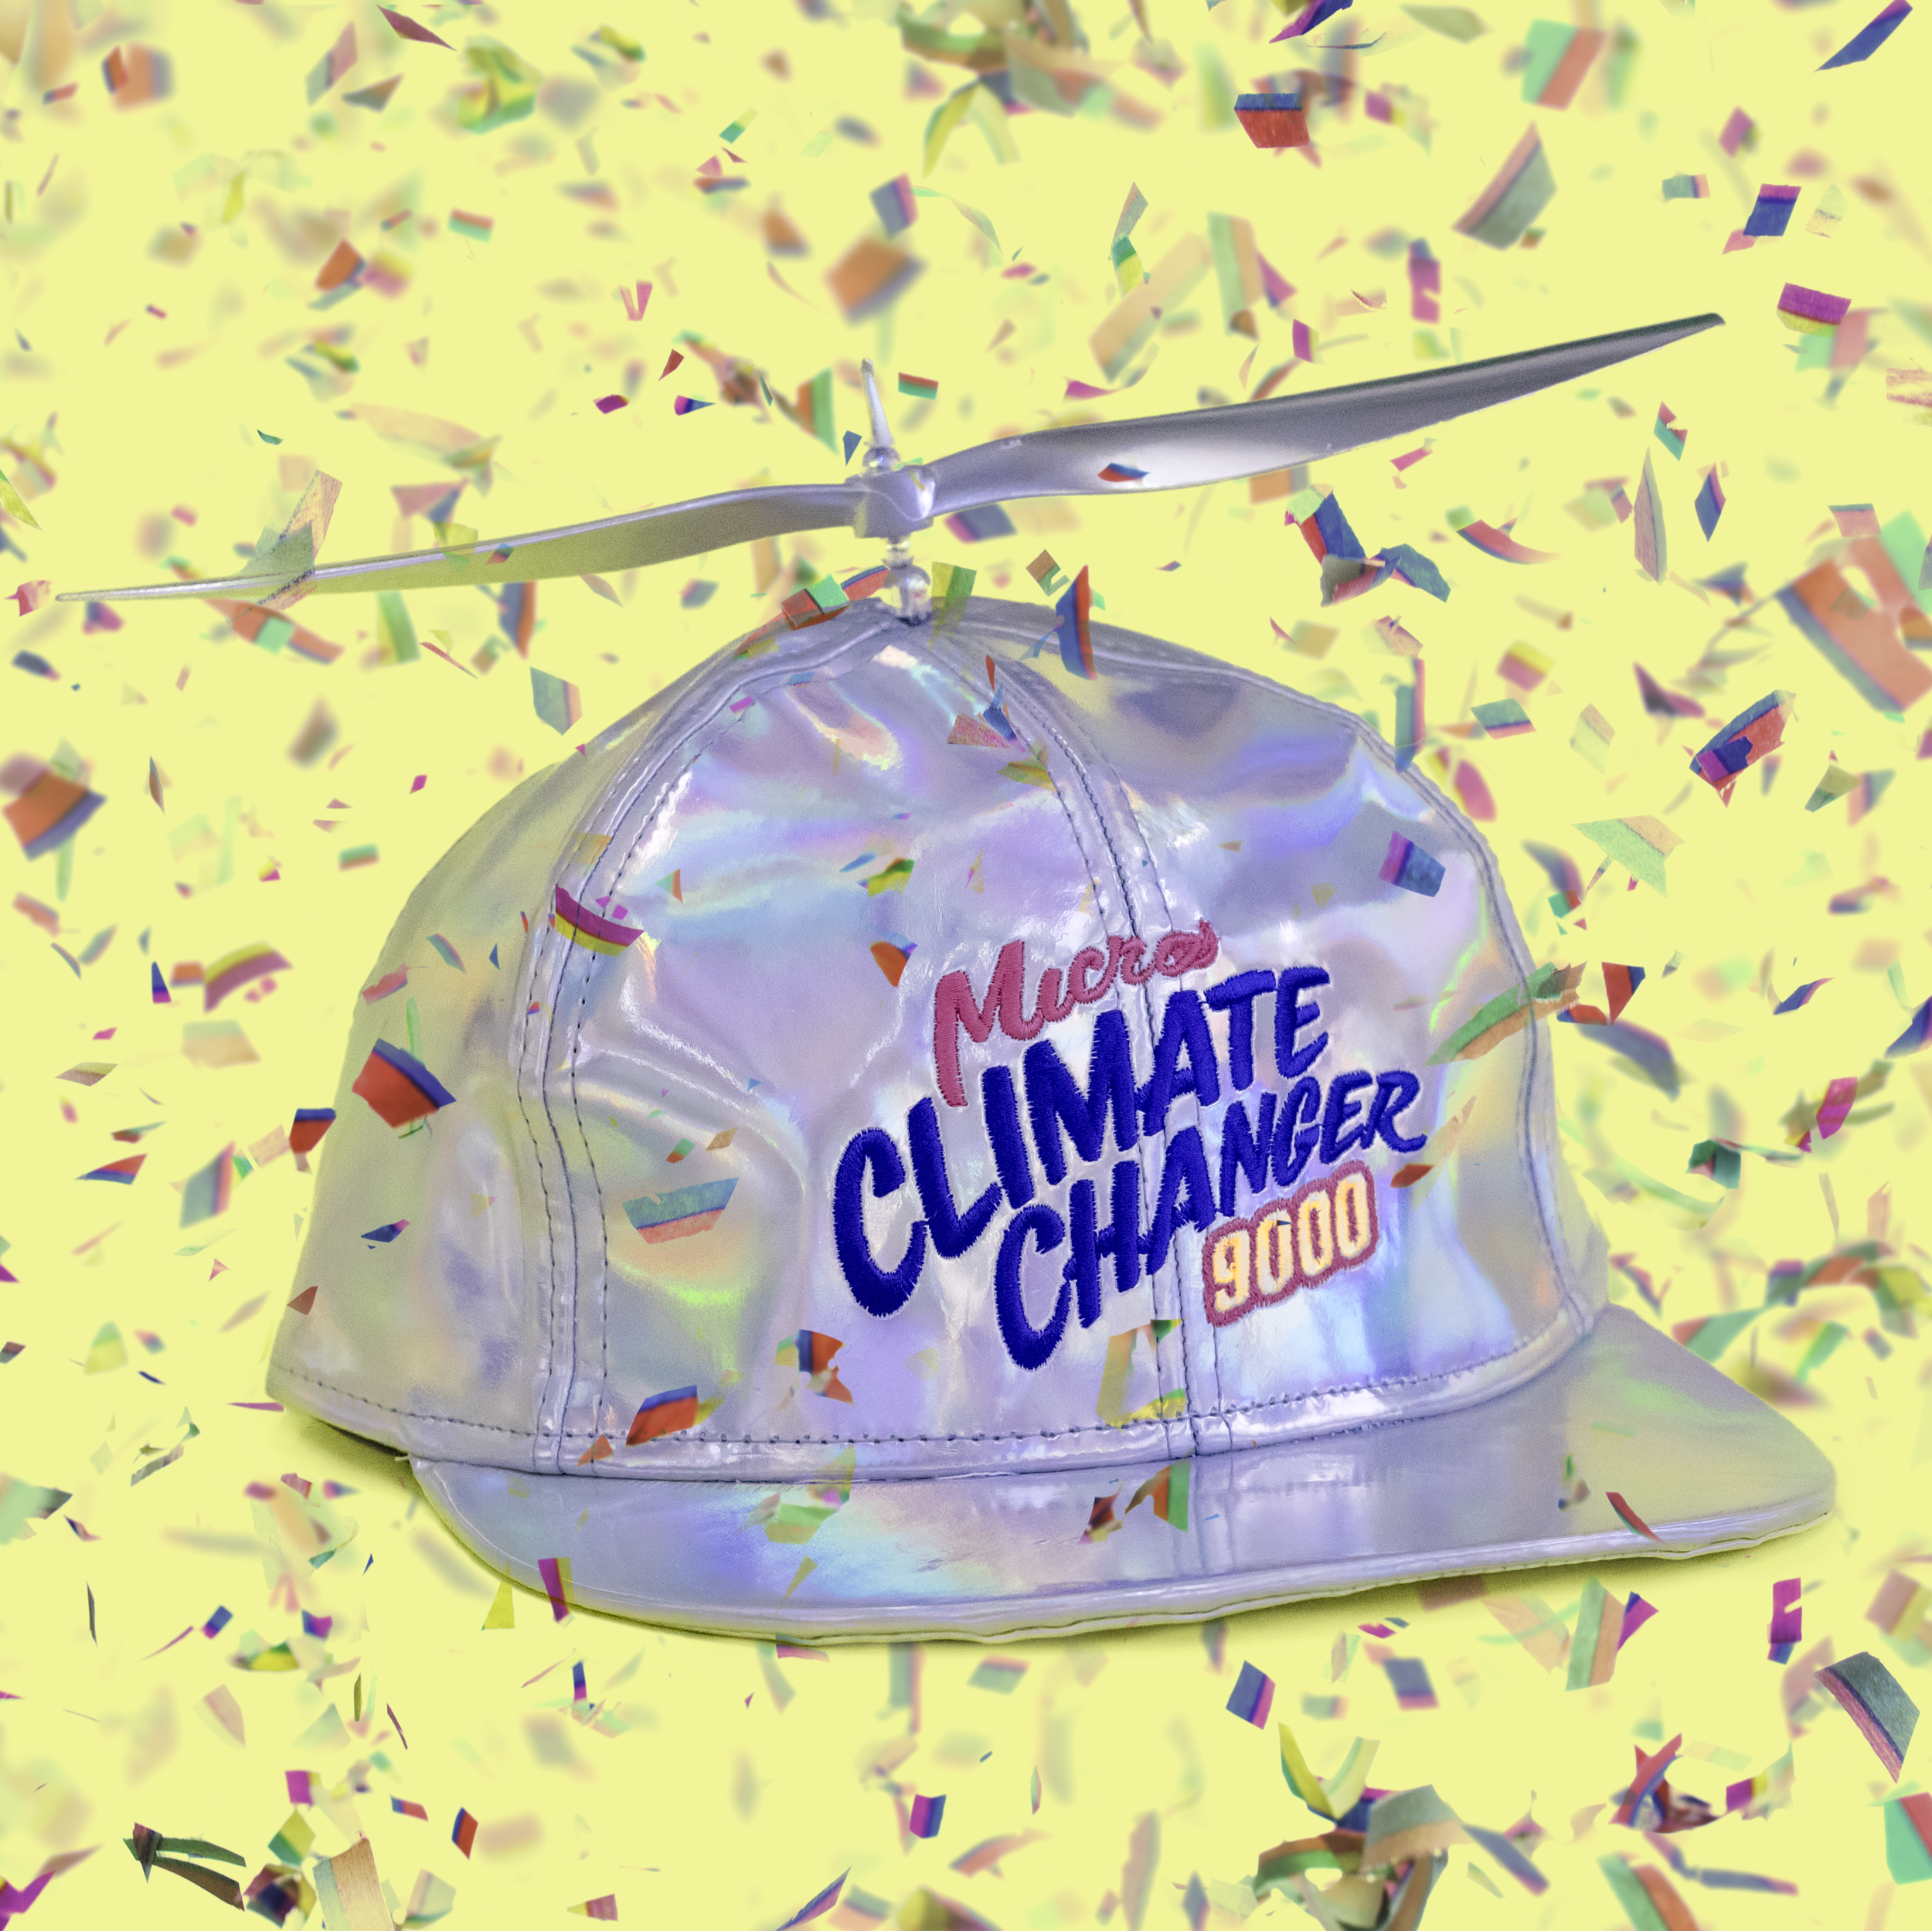 In the age of alternative facts, (upsidedown happyface) introduces the worlds first wind-powered AR (alternative reality) device, the Micro Climate Changer 9000. Some consider that there is plausible deniability for the existence of climate change, but we assure you that micro-climate change is here for real. Guaranteed to lift your mood bigly and the city smog at the same time, the MCC9000 makes a perfect gift for those disillusioned with our current state of existence.